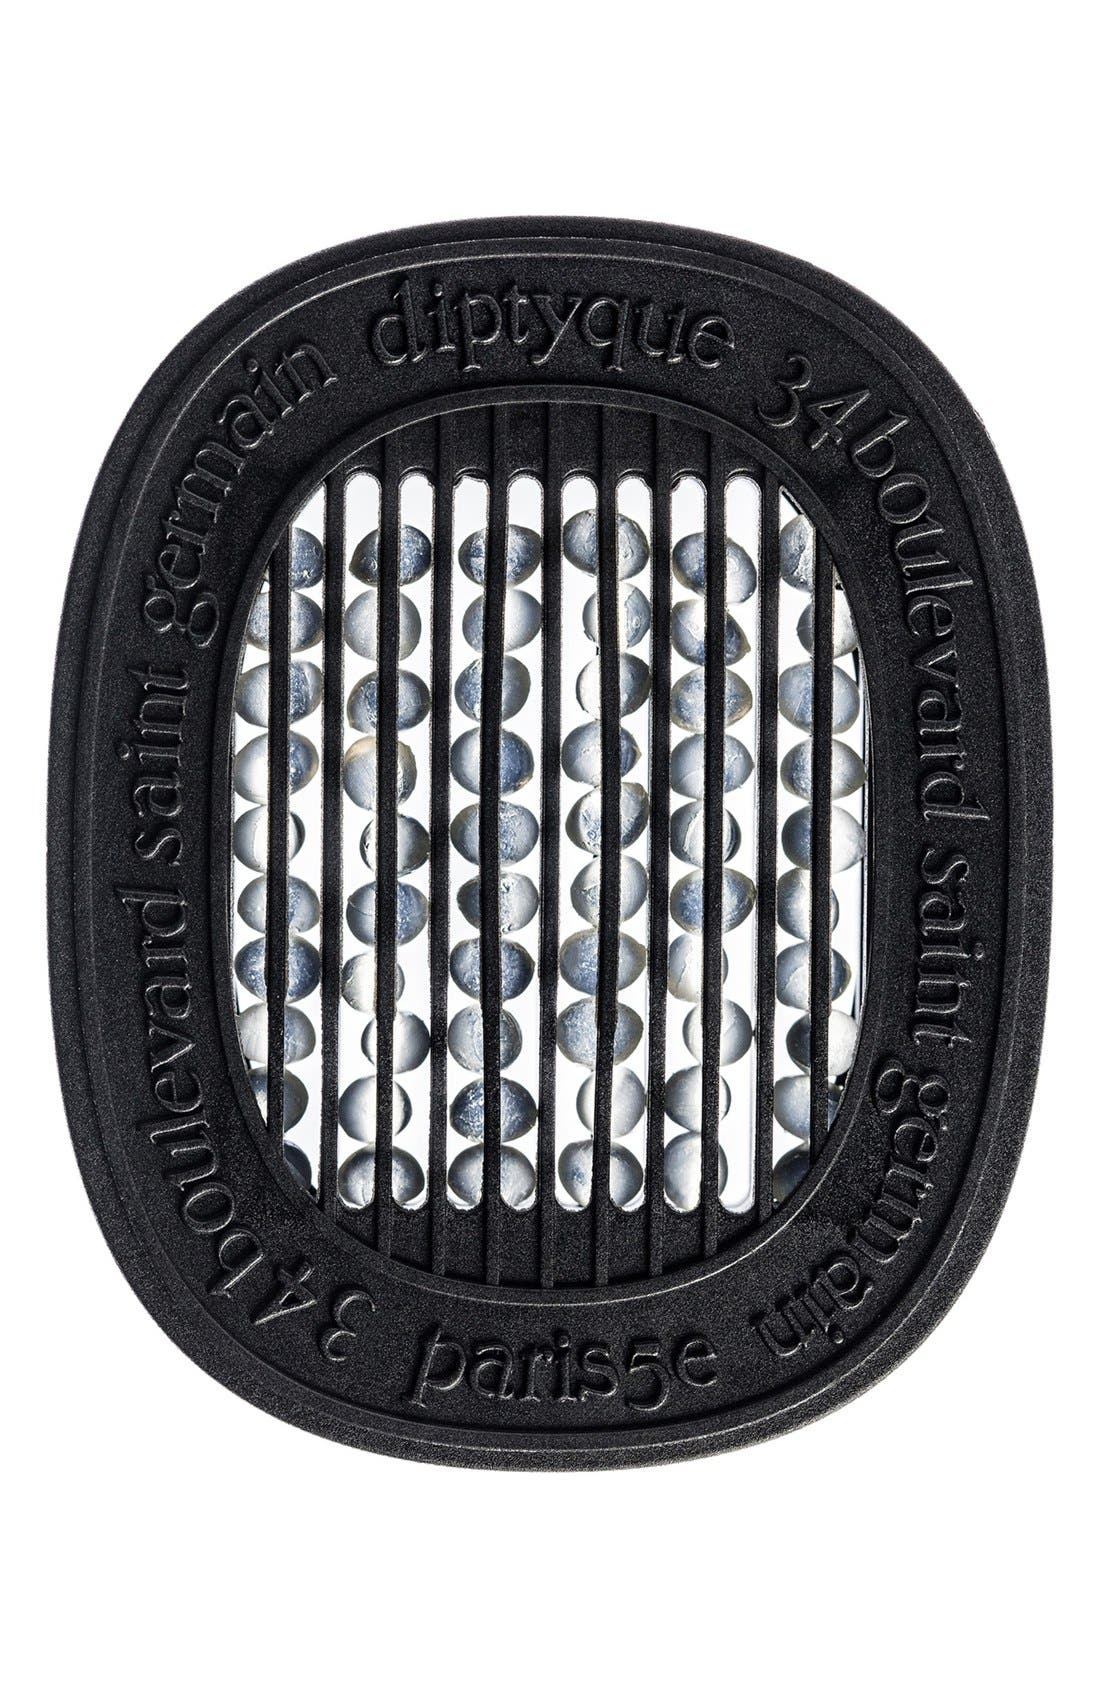 Main Image - diptyque 'Ambre' Electric Diffuser Cartridge